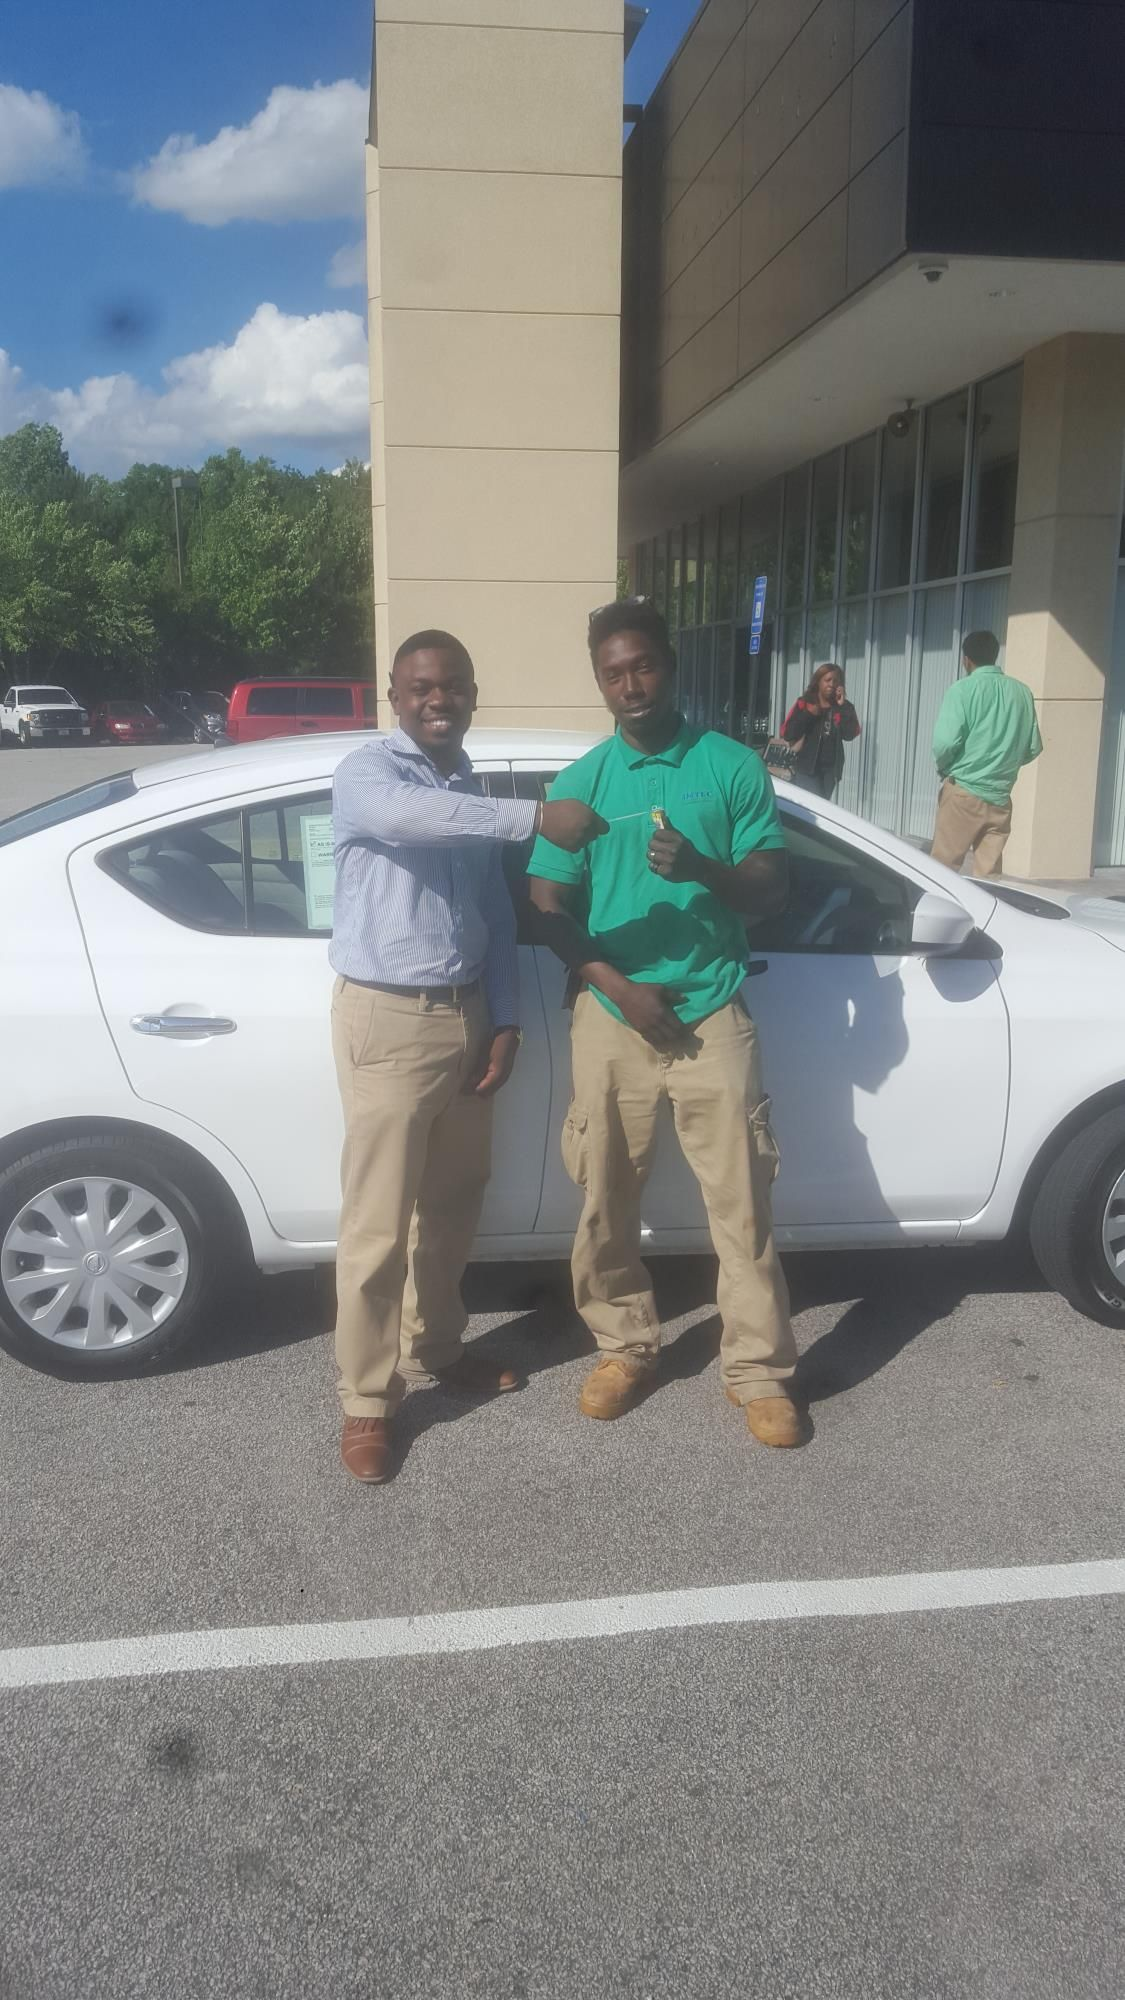 Omari Primus reviews the 2015 Nissan Versa he purchased from